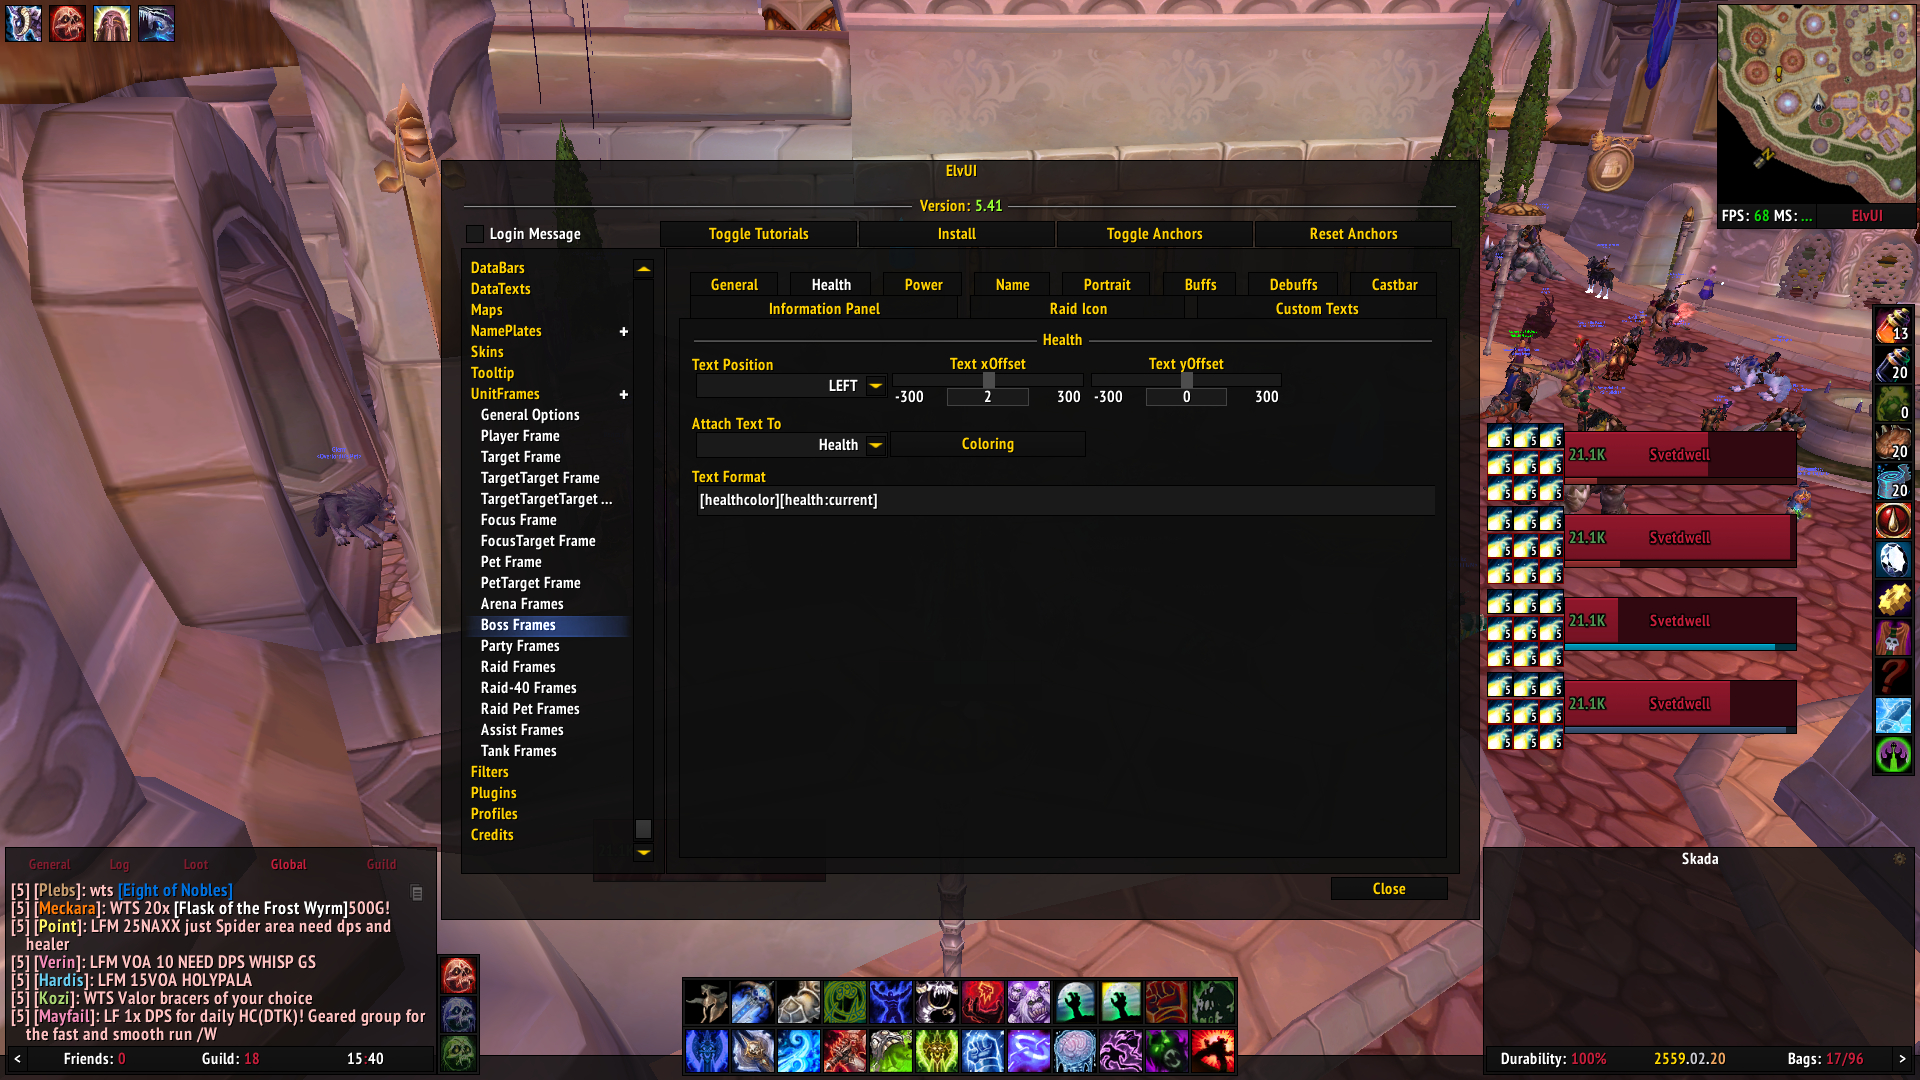 Boss frame not working · Issue #511 · ElvUI-WotLK/ElvUI · GitHub